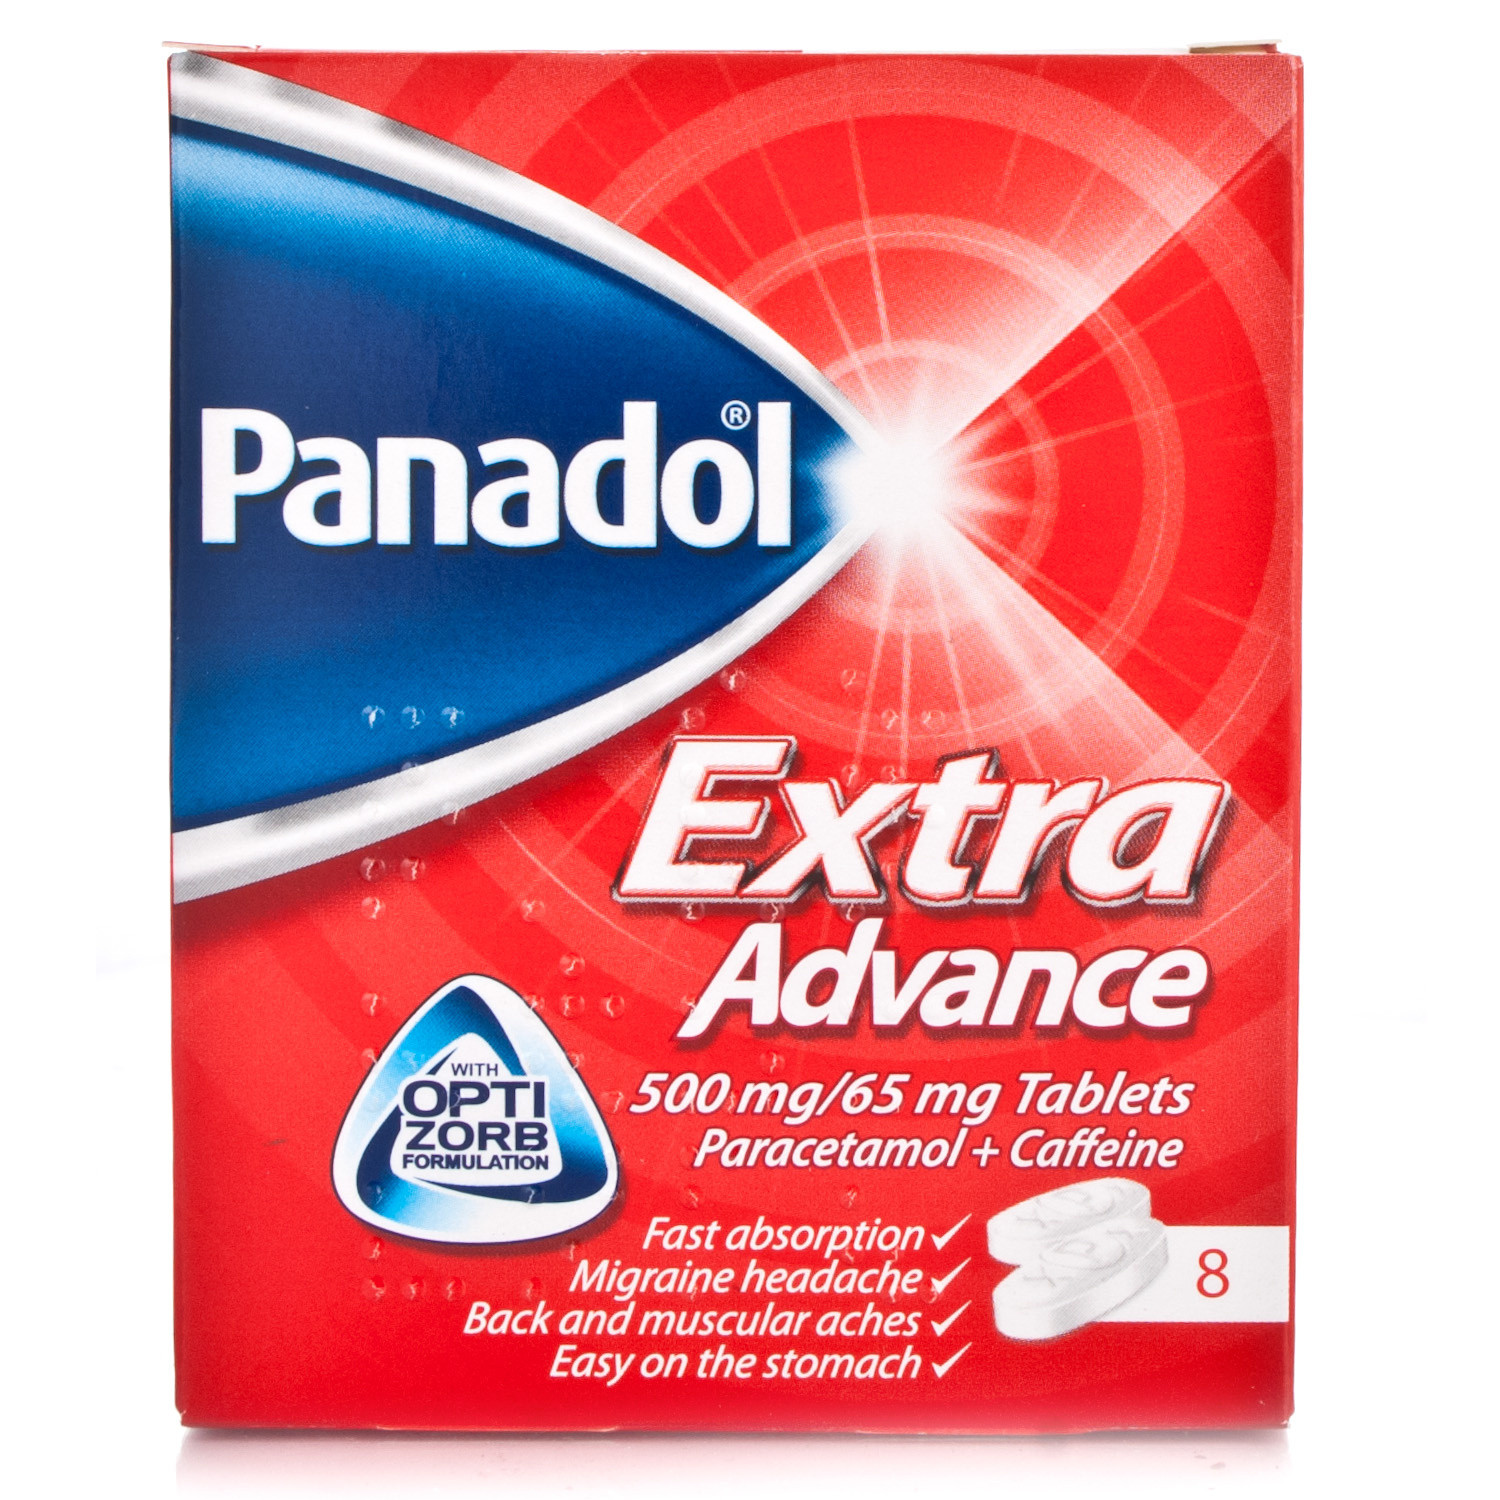 Panadol Extra Advance Chemist Direct